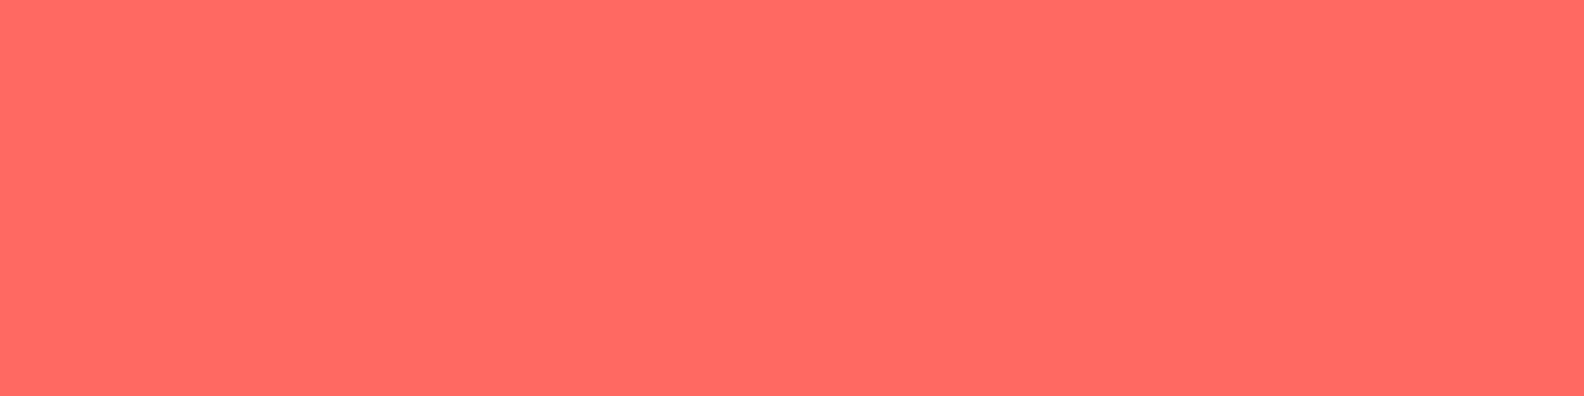 1584x396 Pastel Red Solid Color Background